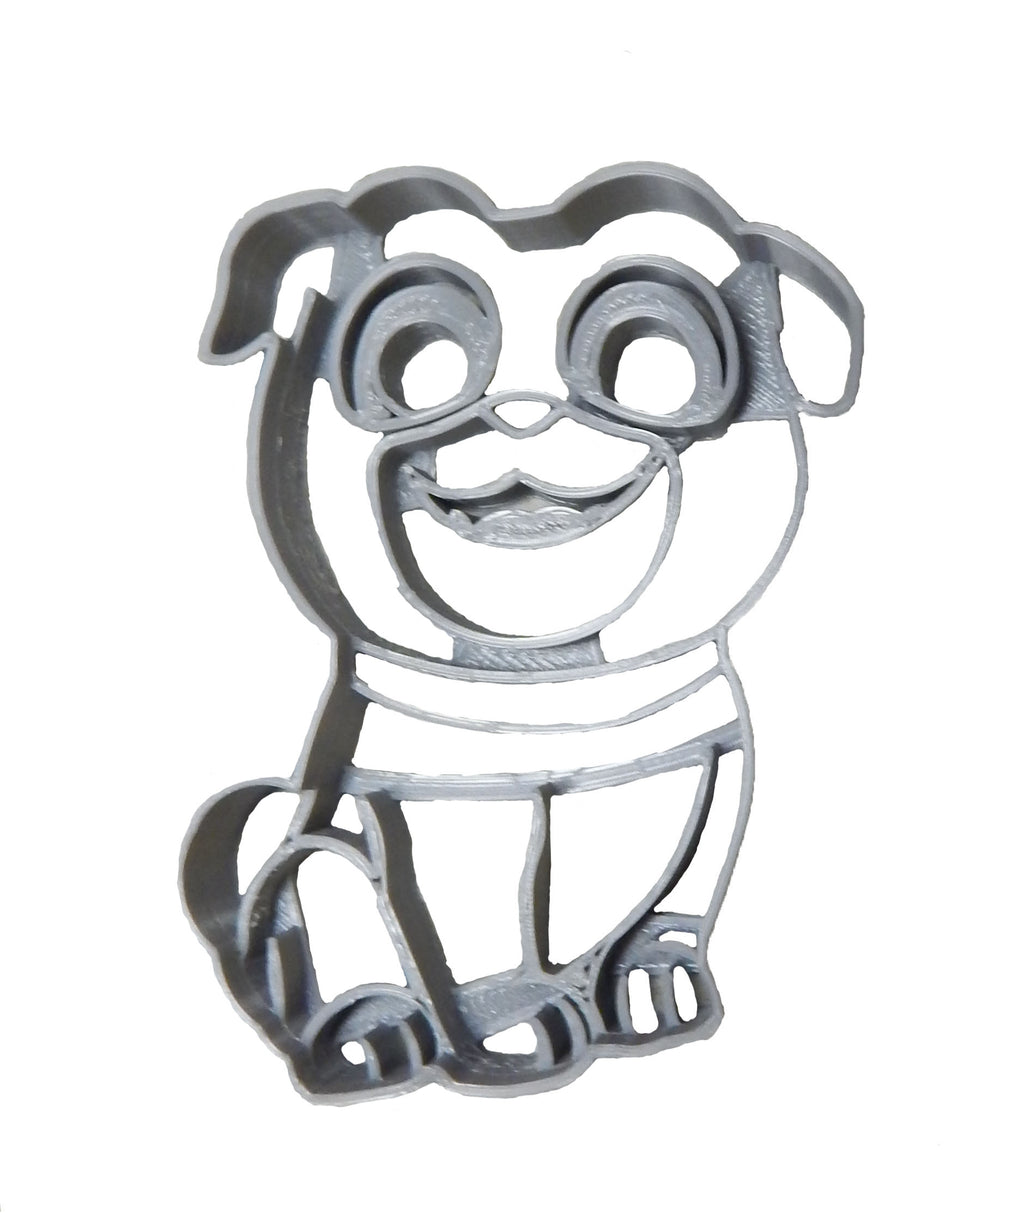 "Puppy Dog Pal TV Show Disney Brothers Bingo Rolly Pals Character Fondant Stamp Cutter Or Cupcake Topper Size 1.75"" USA FD2262"